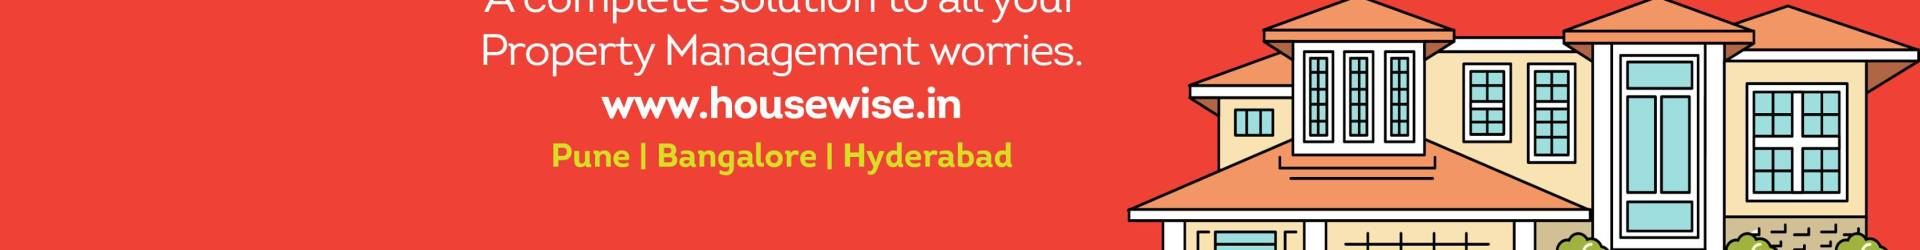 Housewise: A rental management company in India